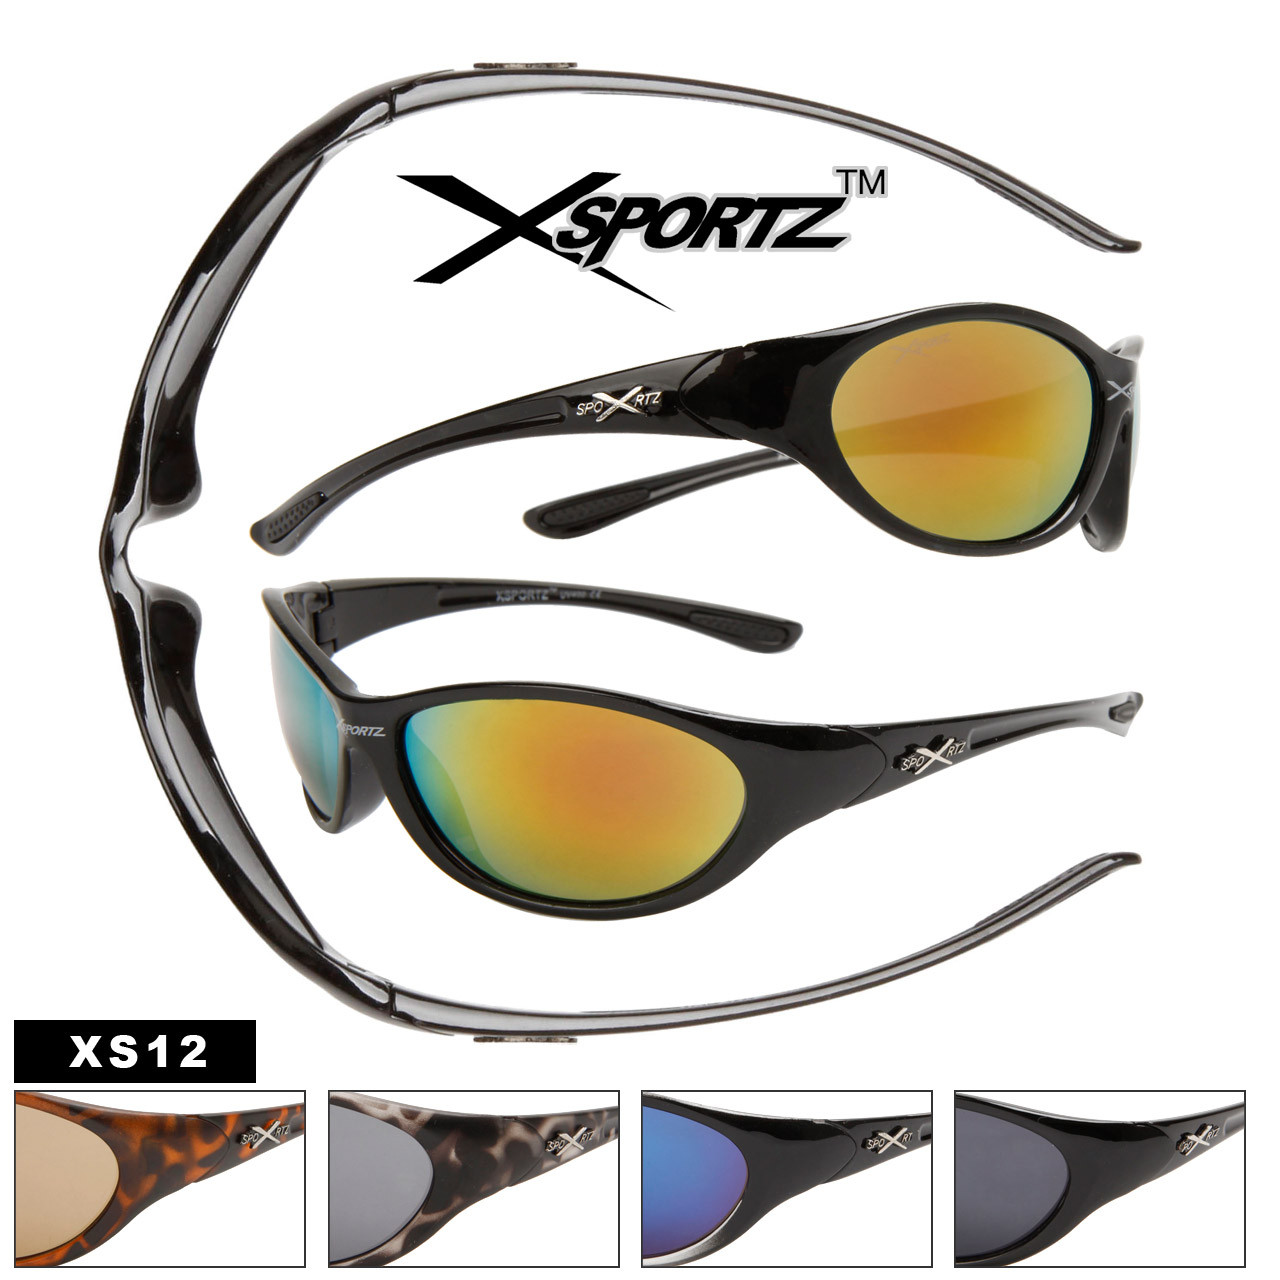 Wholesale Xsportz Sunglasses XS12